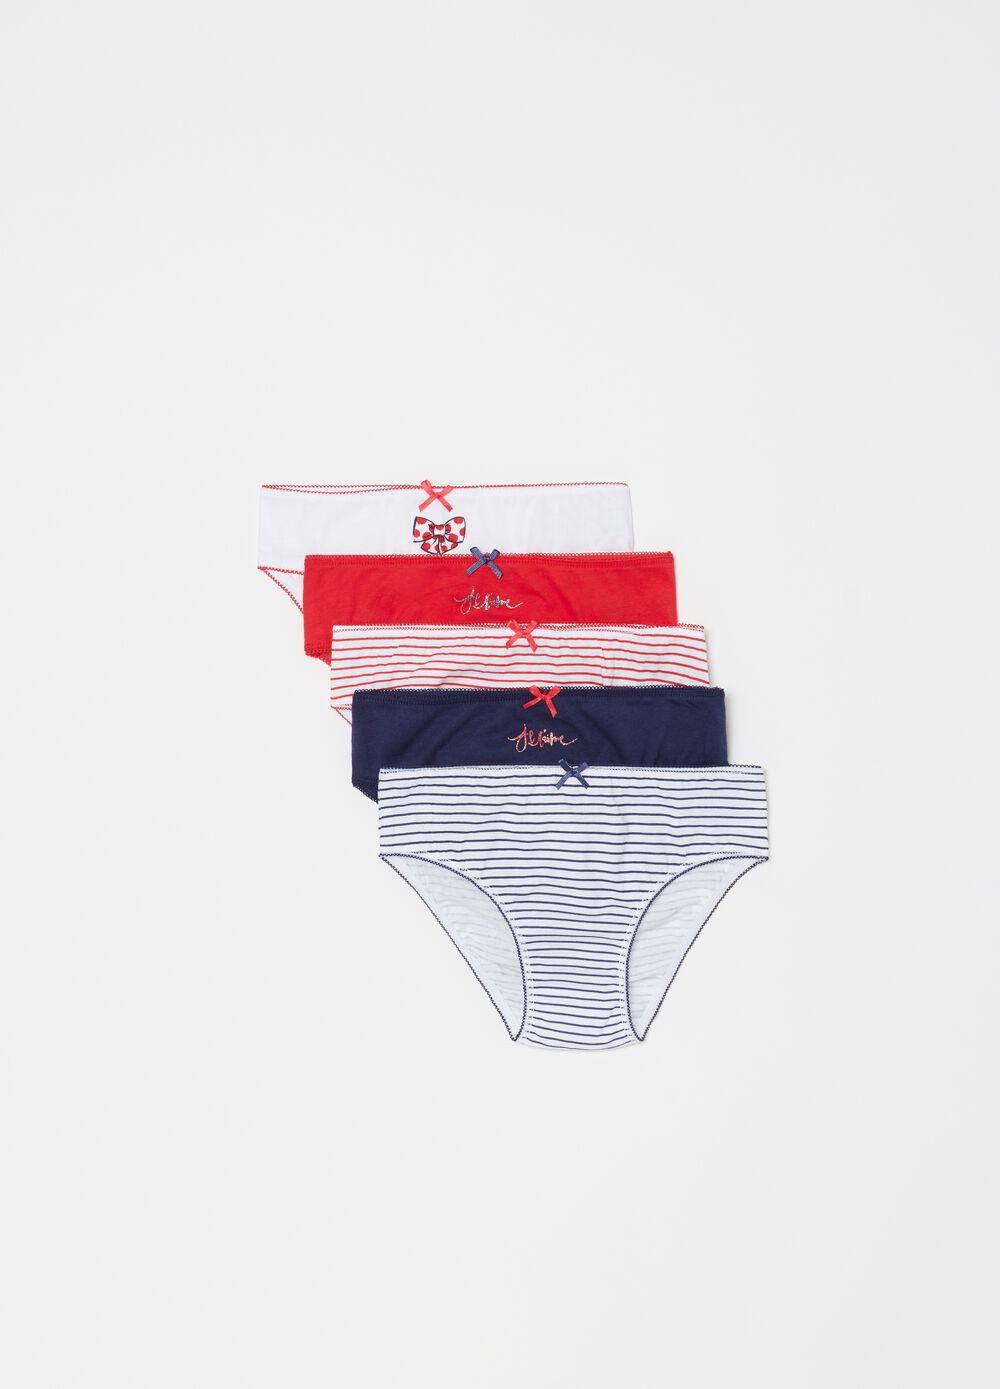 Five-pack briefs in 100% organic cotton